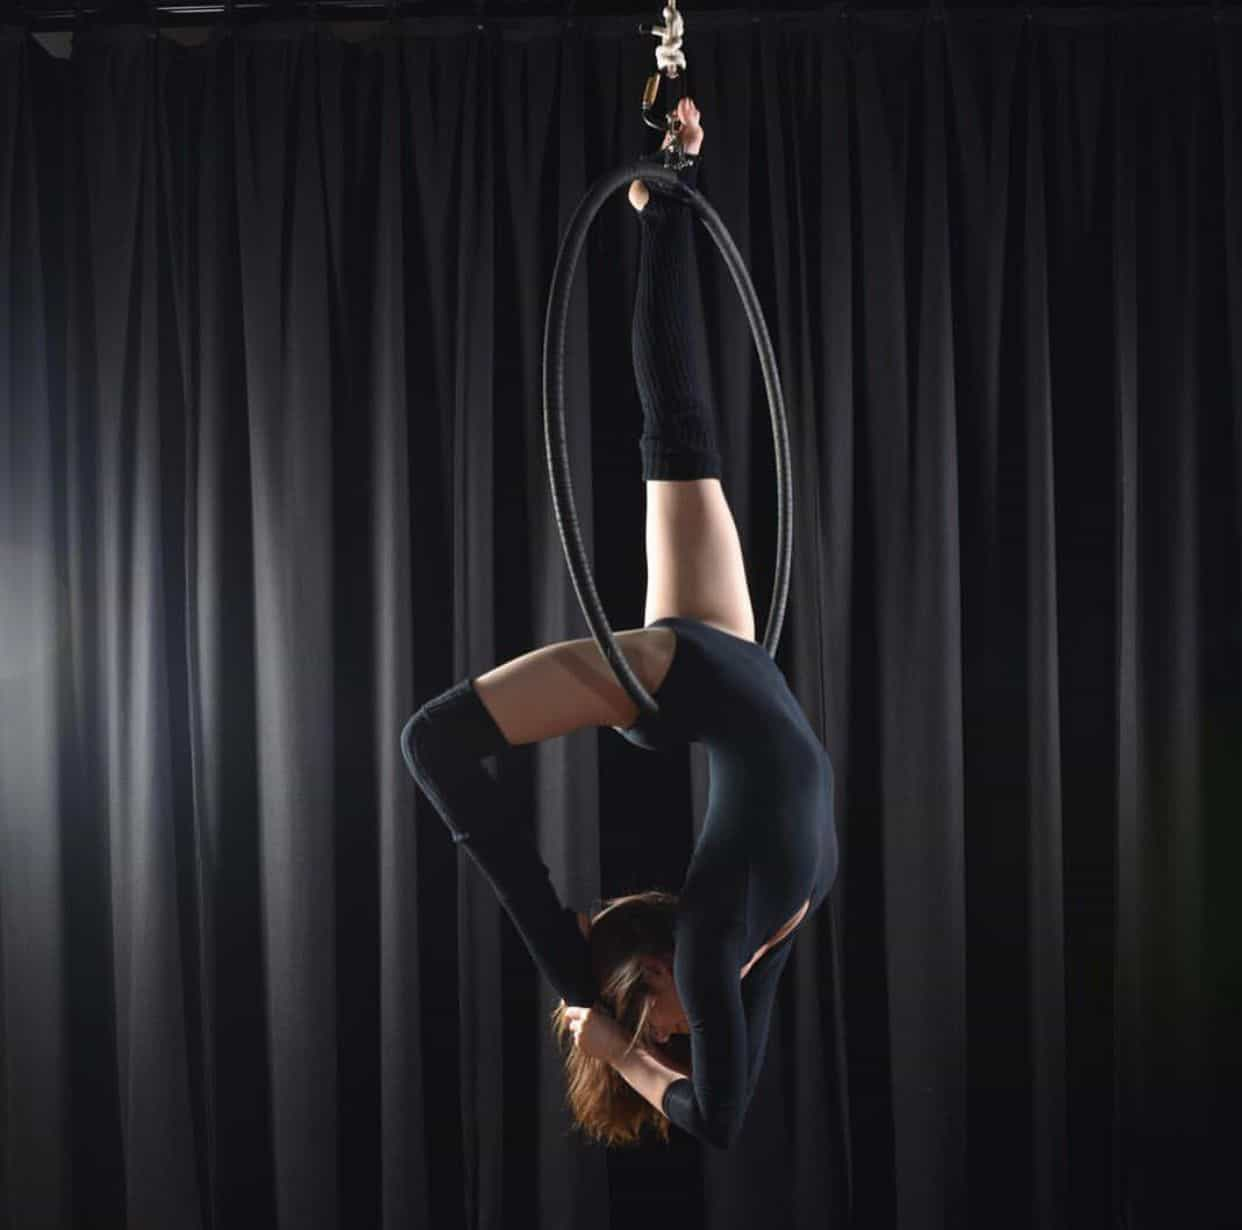 woman training aerial hoop for photoshoot wearing black doing flexy back trick, aerial silk classes